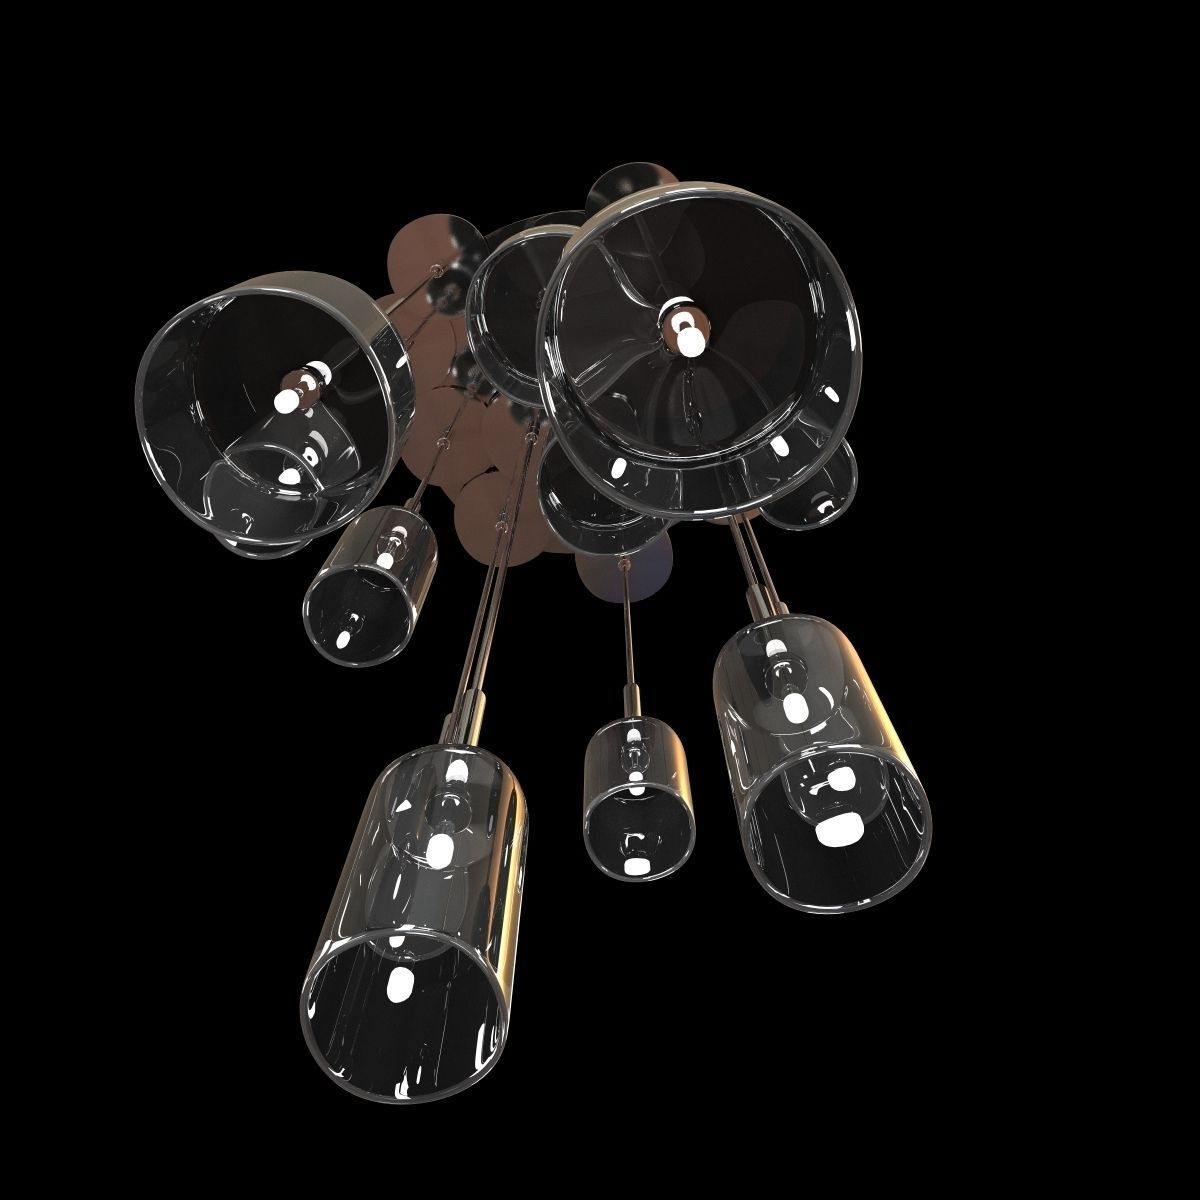 Lampe Ozcan Cool Gallery Of Ozcan Lamp Pendant Chandelier D Model Max